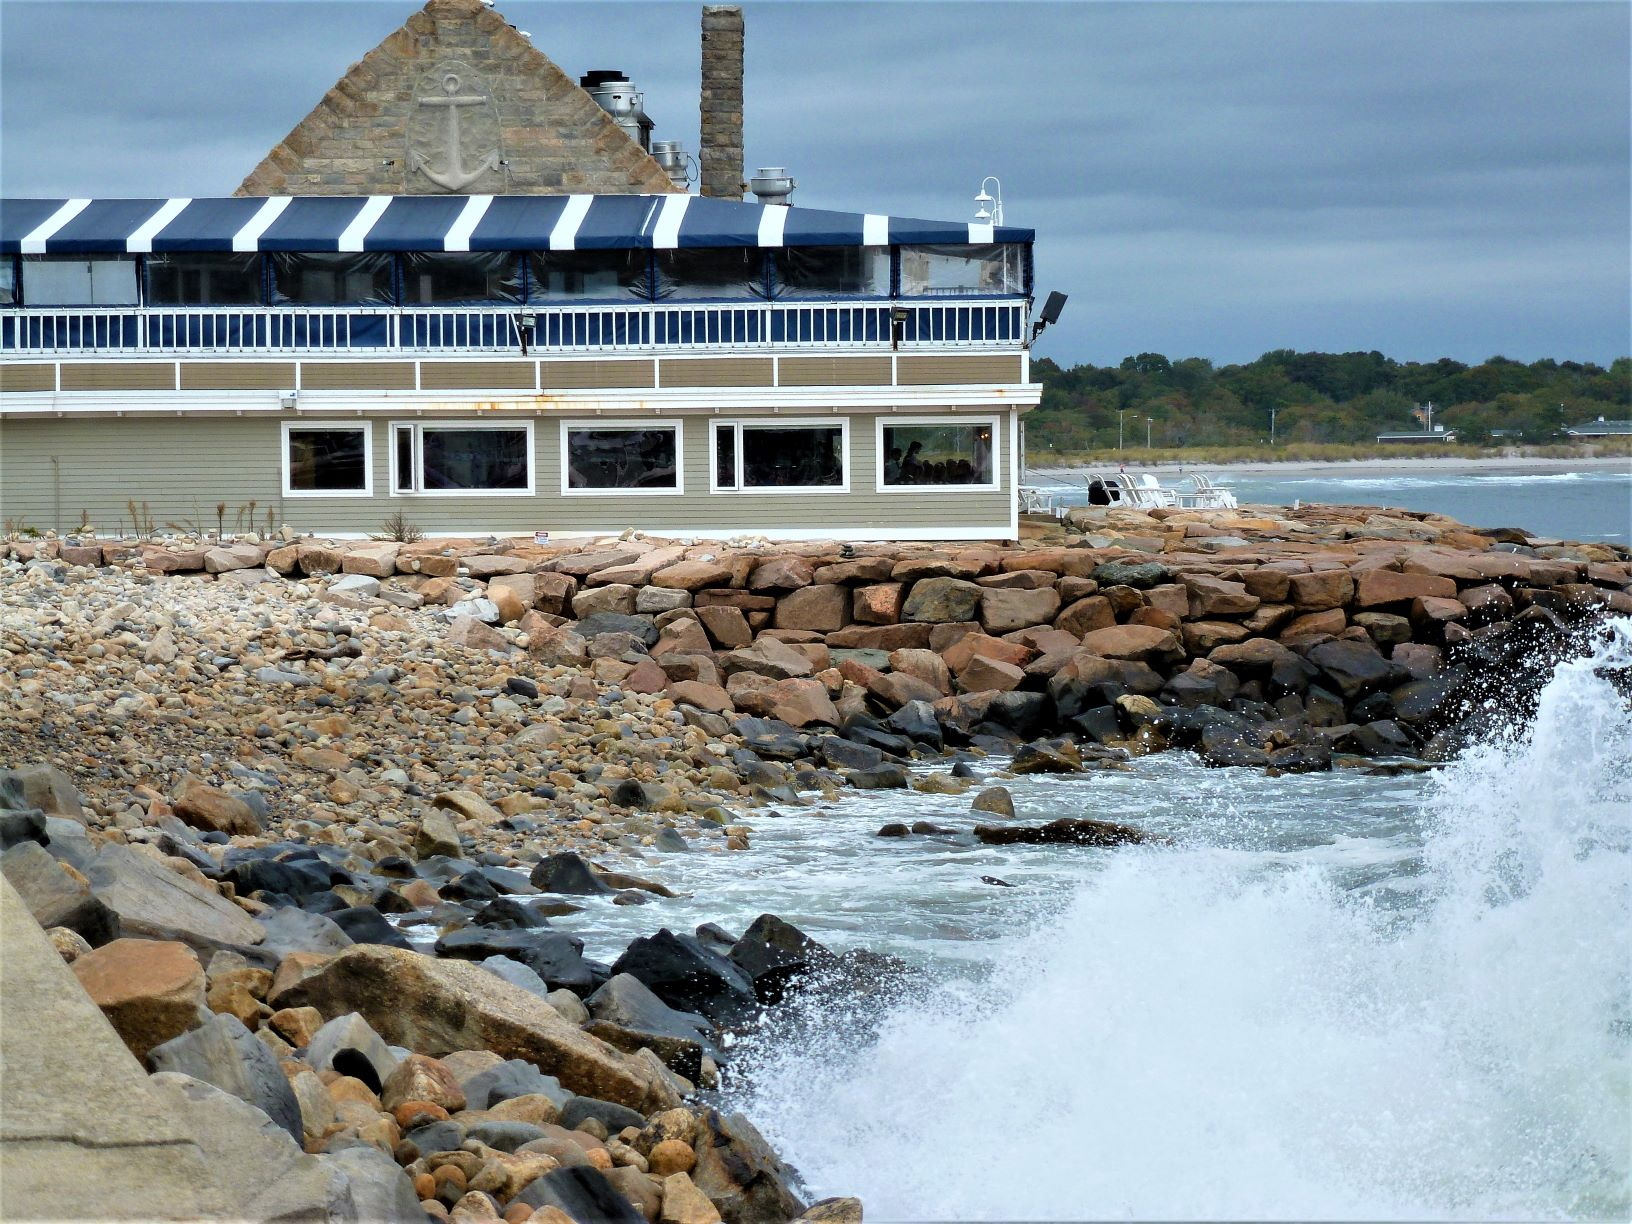 The Coast Guard House in Narragansett, R.I., features locally harvested seafood and incredible water views.